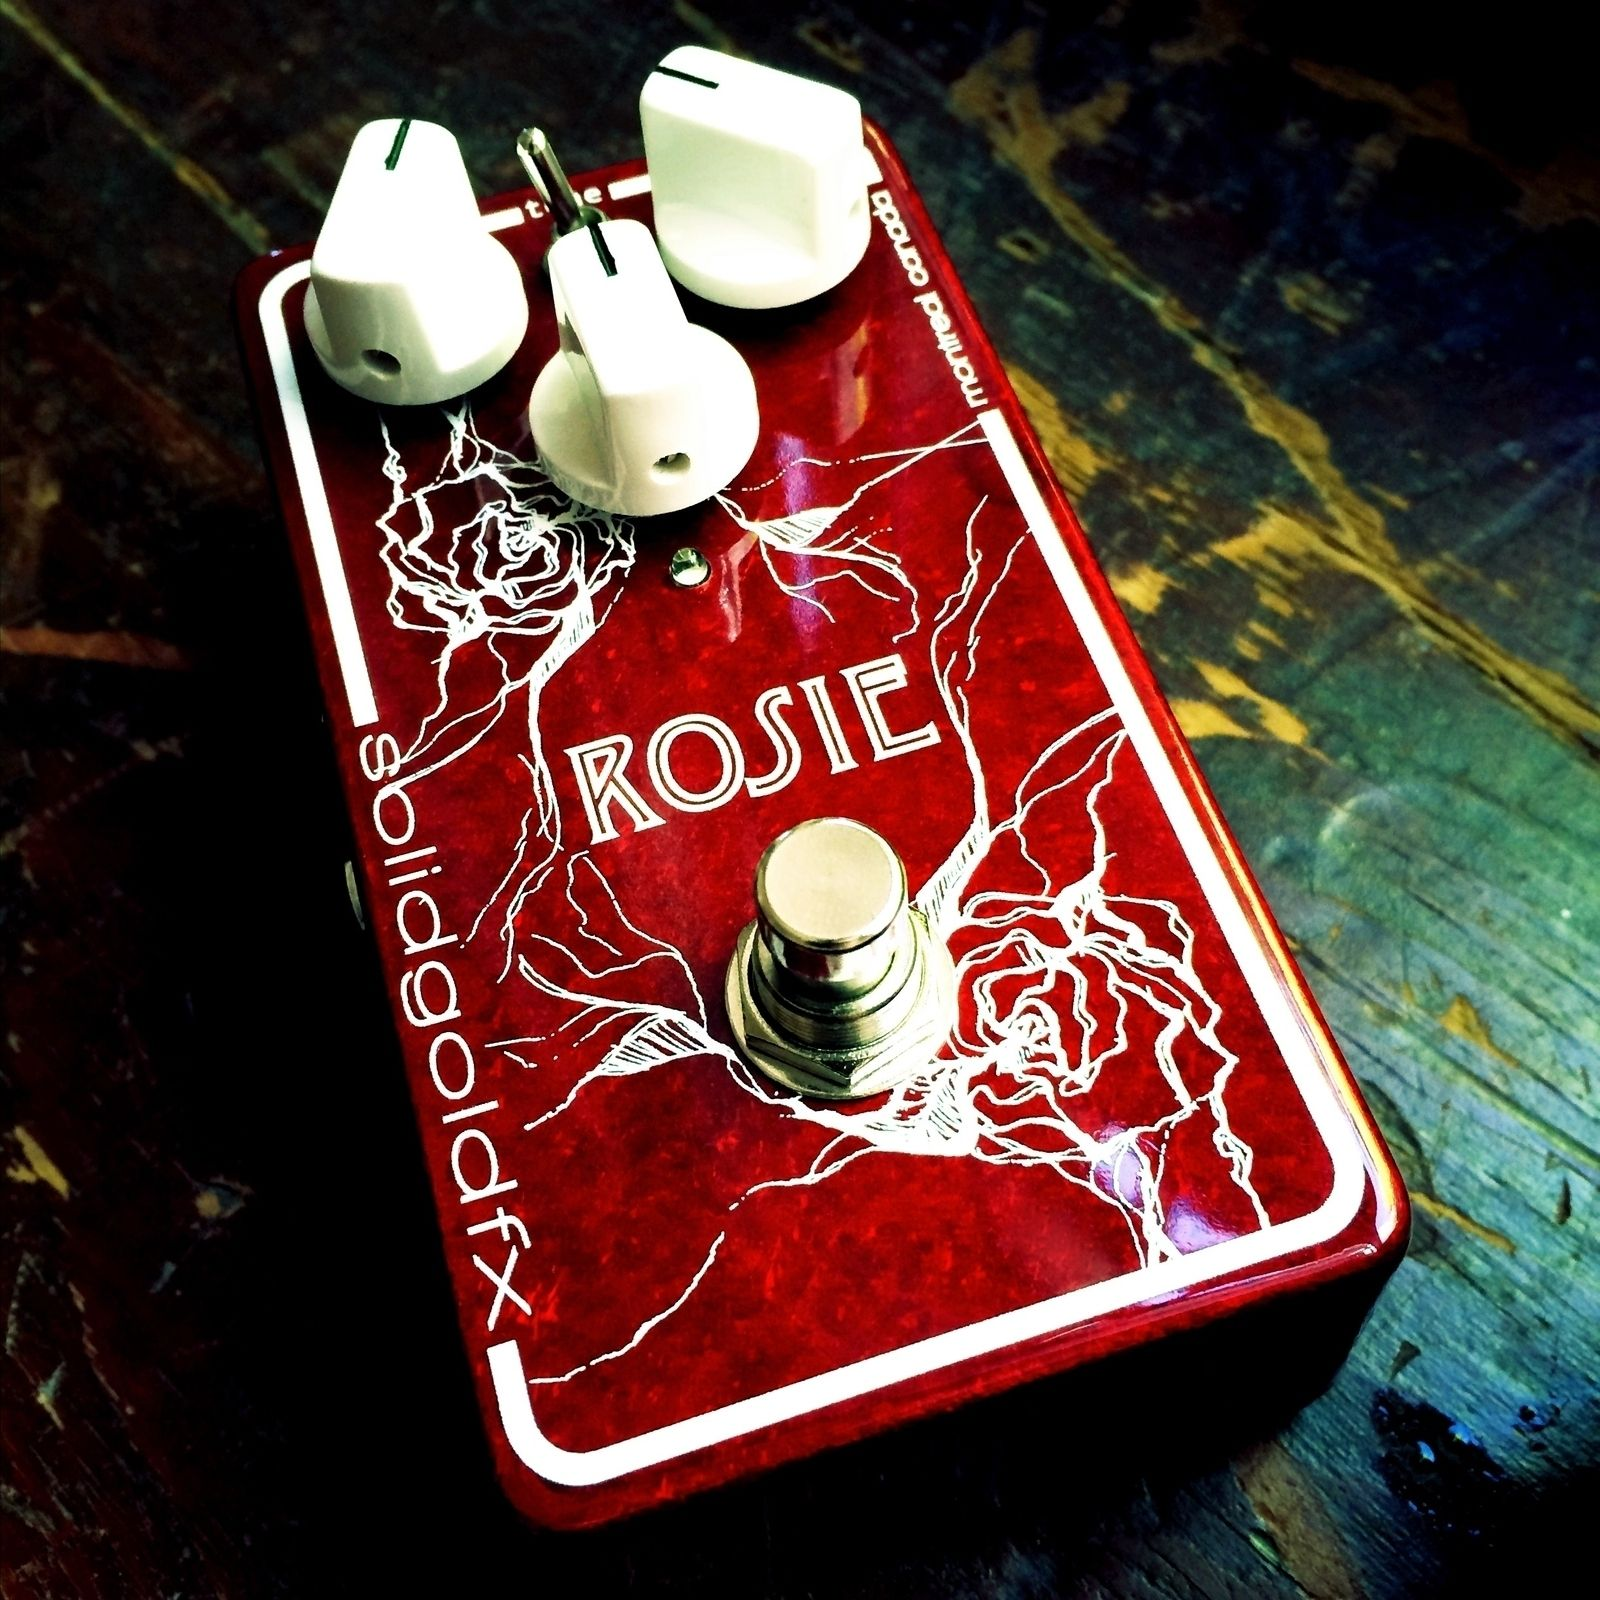 Don't forget to check out the give away we have going on right now! The Rosie is an incredible Fuzz made by Solid Gold FX. Make sure to go follow @solidgoldfx then follow the link in our bio section to enter to win this legendary FUZZ! #solidgoldfx #sgfx #sgfxfuzz #rosie  #rogueguitarshop #rosiefuzz #tonebender #tonebendermkii #mkII #jfet #silicon #bias #perfectwithalespaul #zeptones #vintagesoundmodernfeatures #fuzz #fuzzforever #pedaloftheday #giveaway #tonefordays #cleantone #tone…